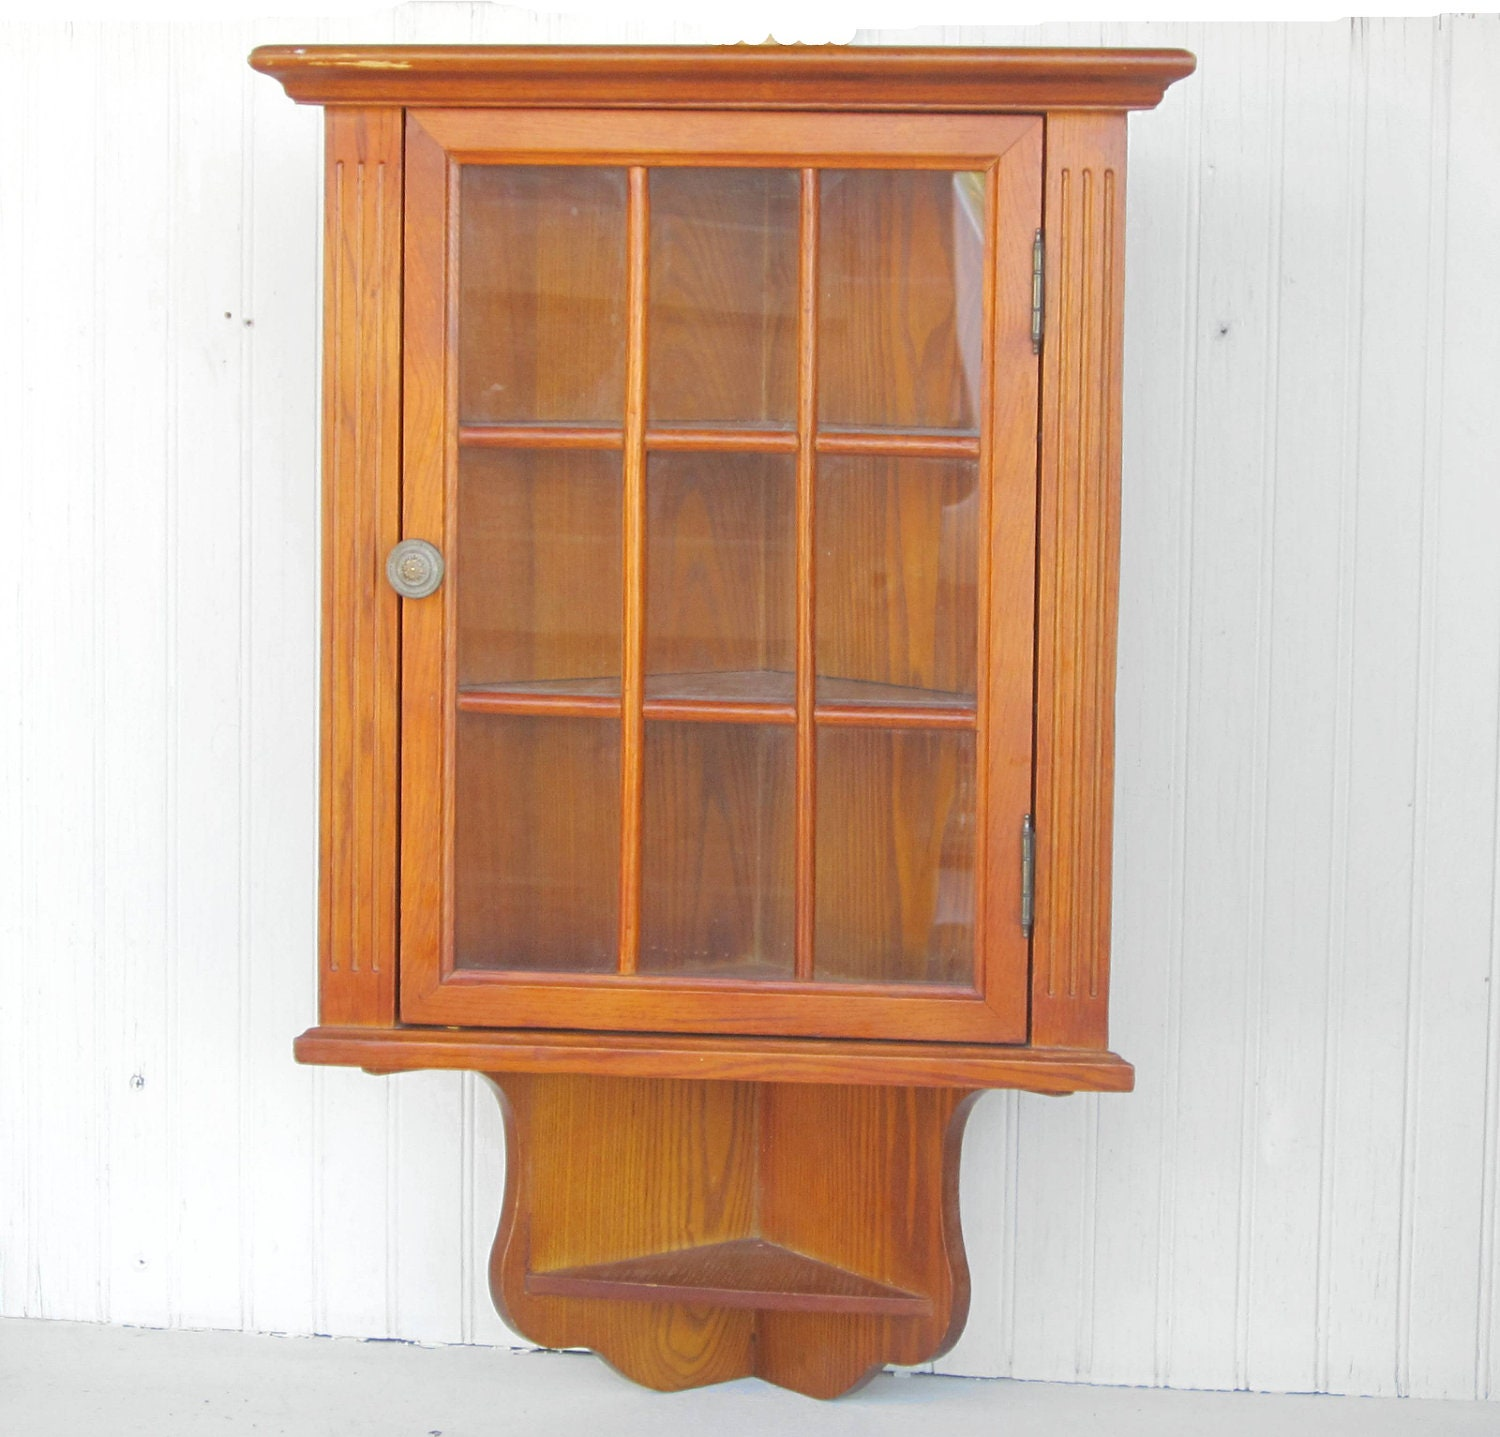 wooden wall hanging corner cabinet curio display by thejunkman. Black Bedroom Furniture Sets. Home Design Ideas